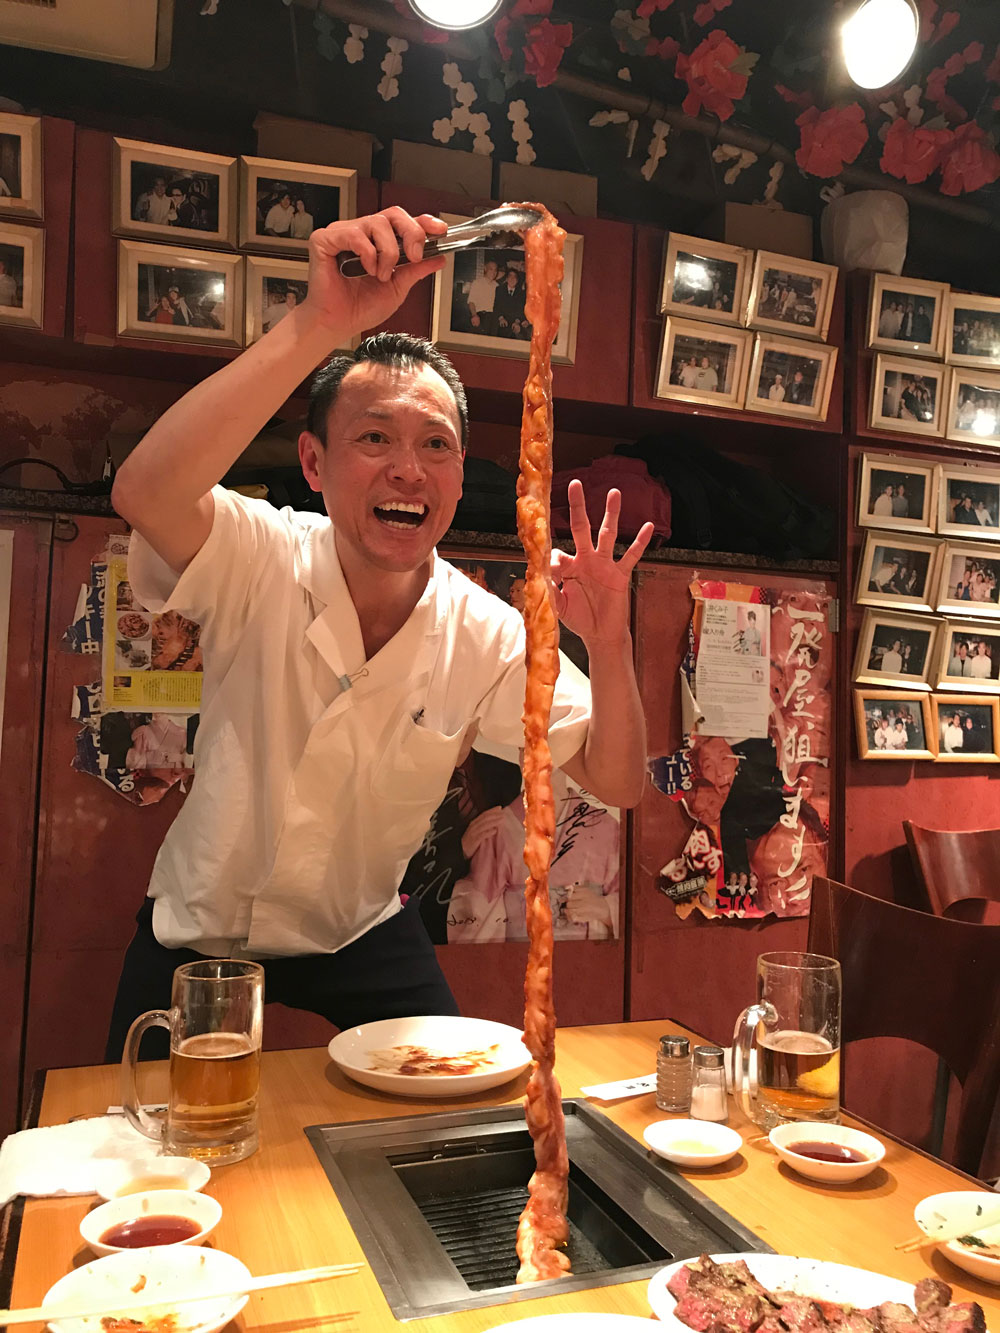 yakiniku meimon spokeman yakki holding meter long cow intestine